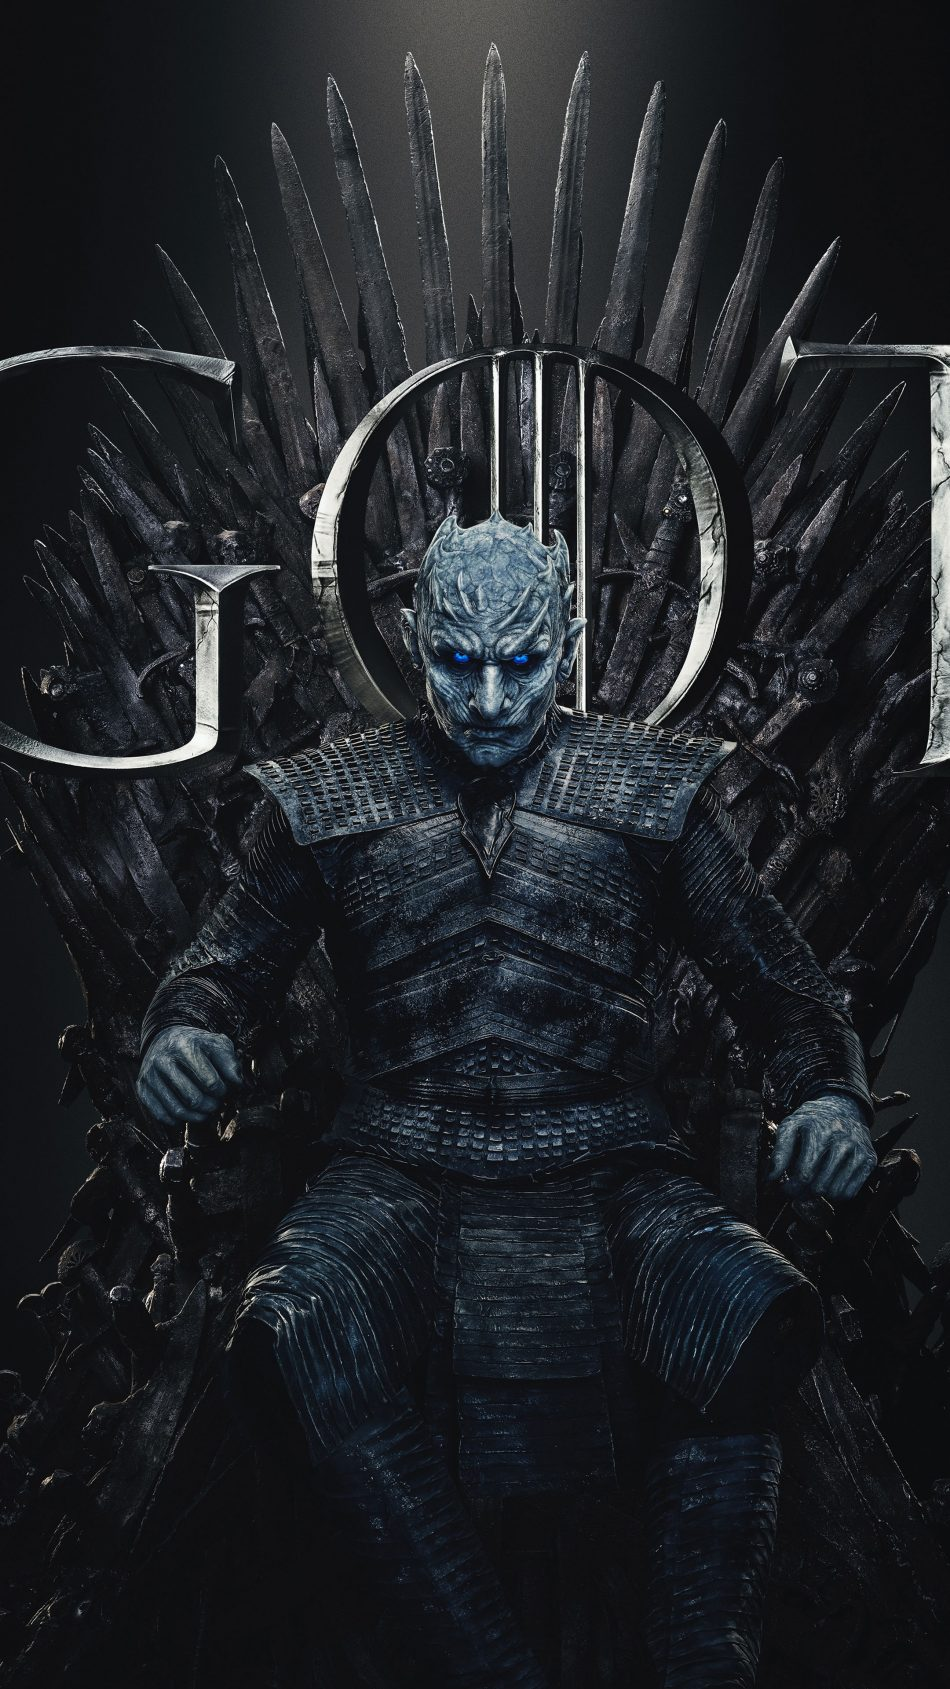 Night King Game of Thrones Season 8 4K Ultra HD Mobile Wallpaper